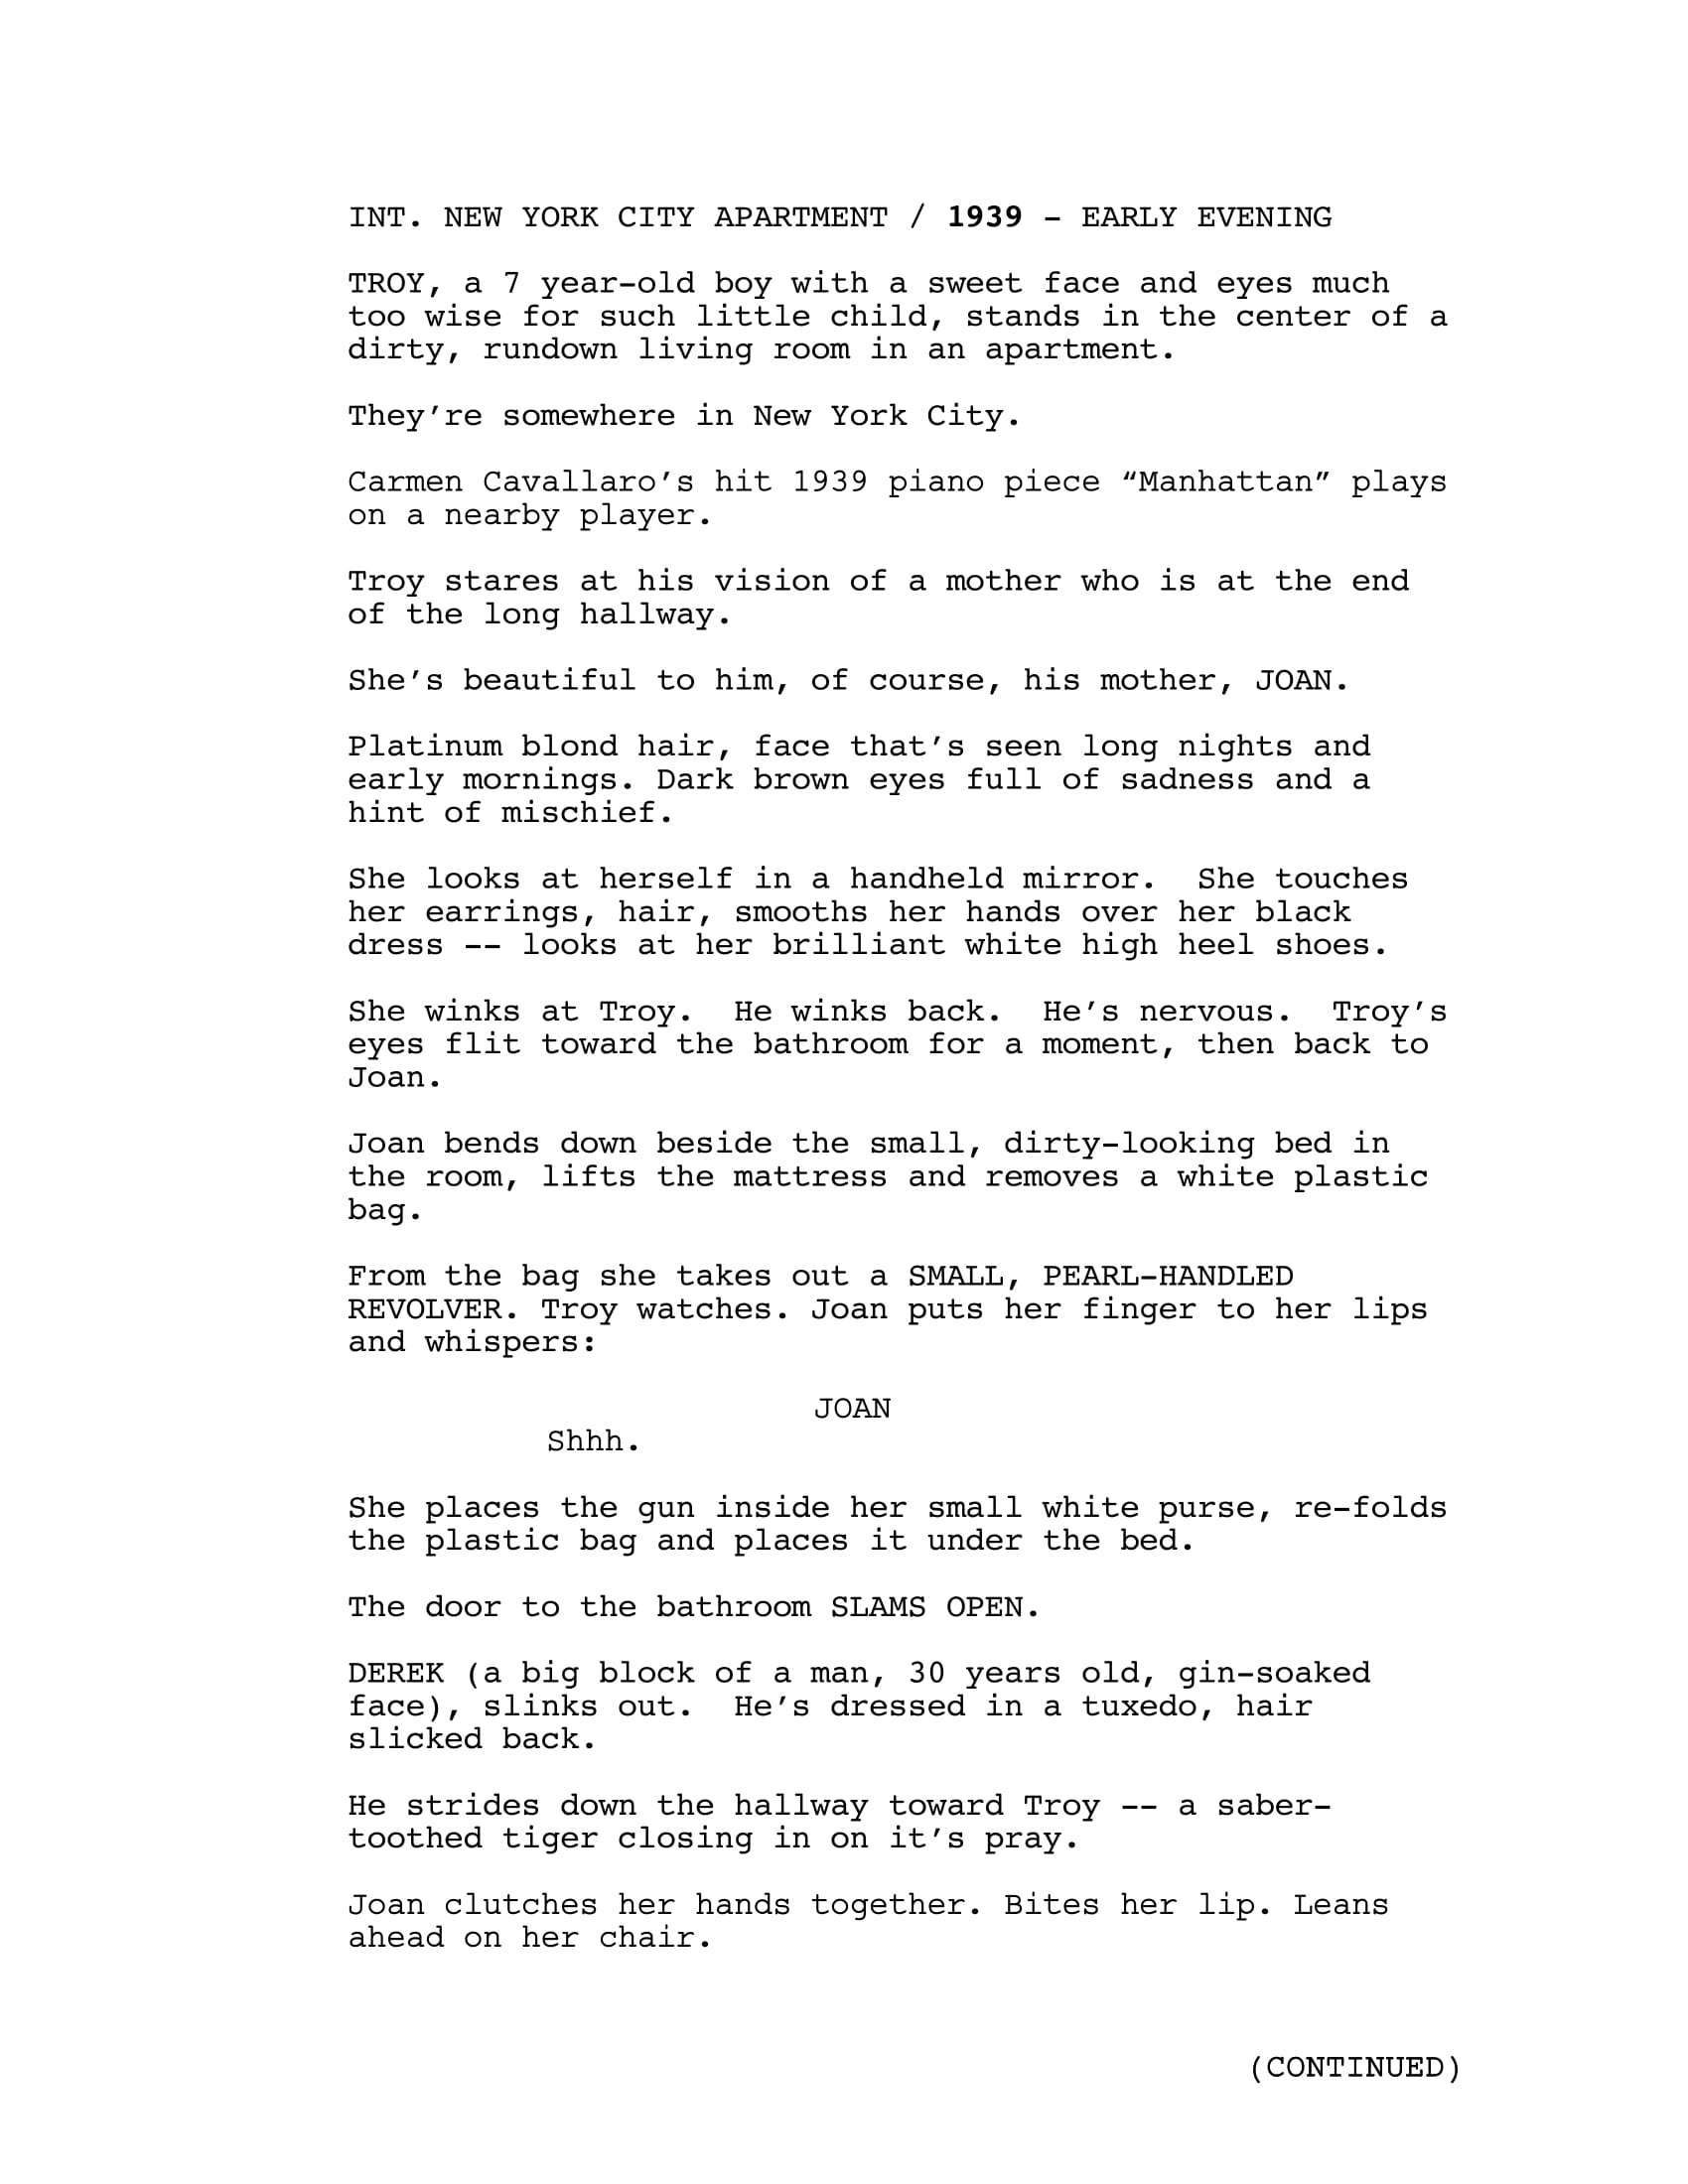 MichaelCBryan_BlackAngel_FeatureScript_First10Pages-02.jpg